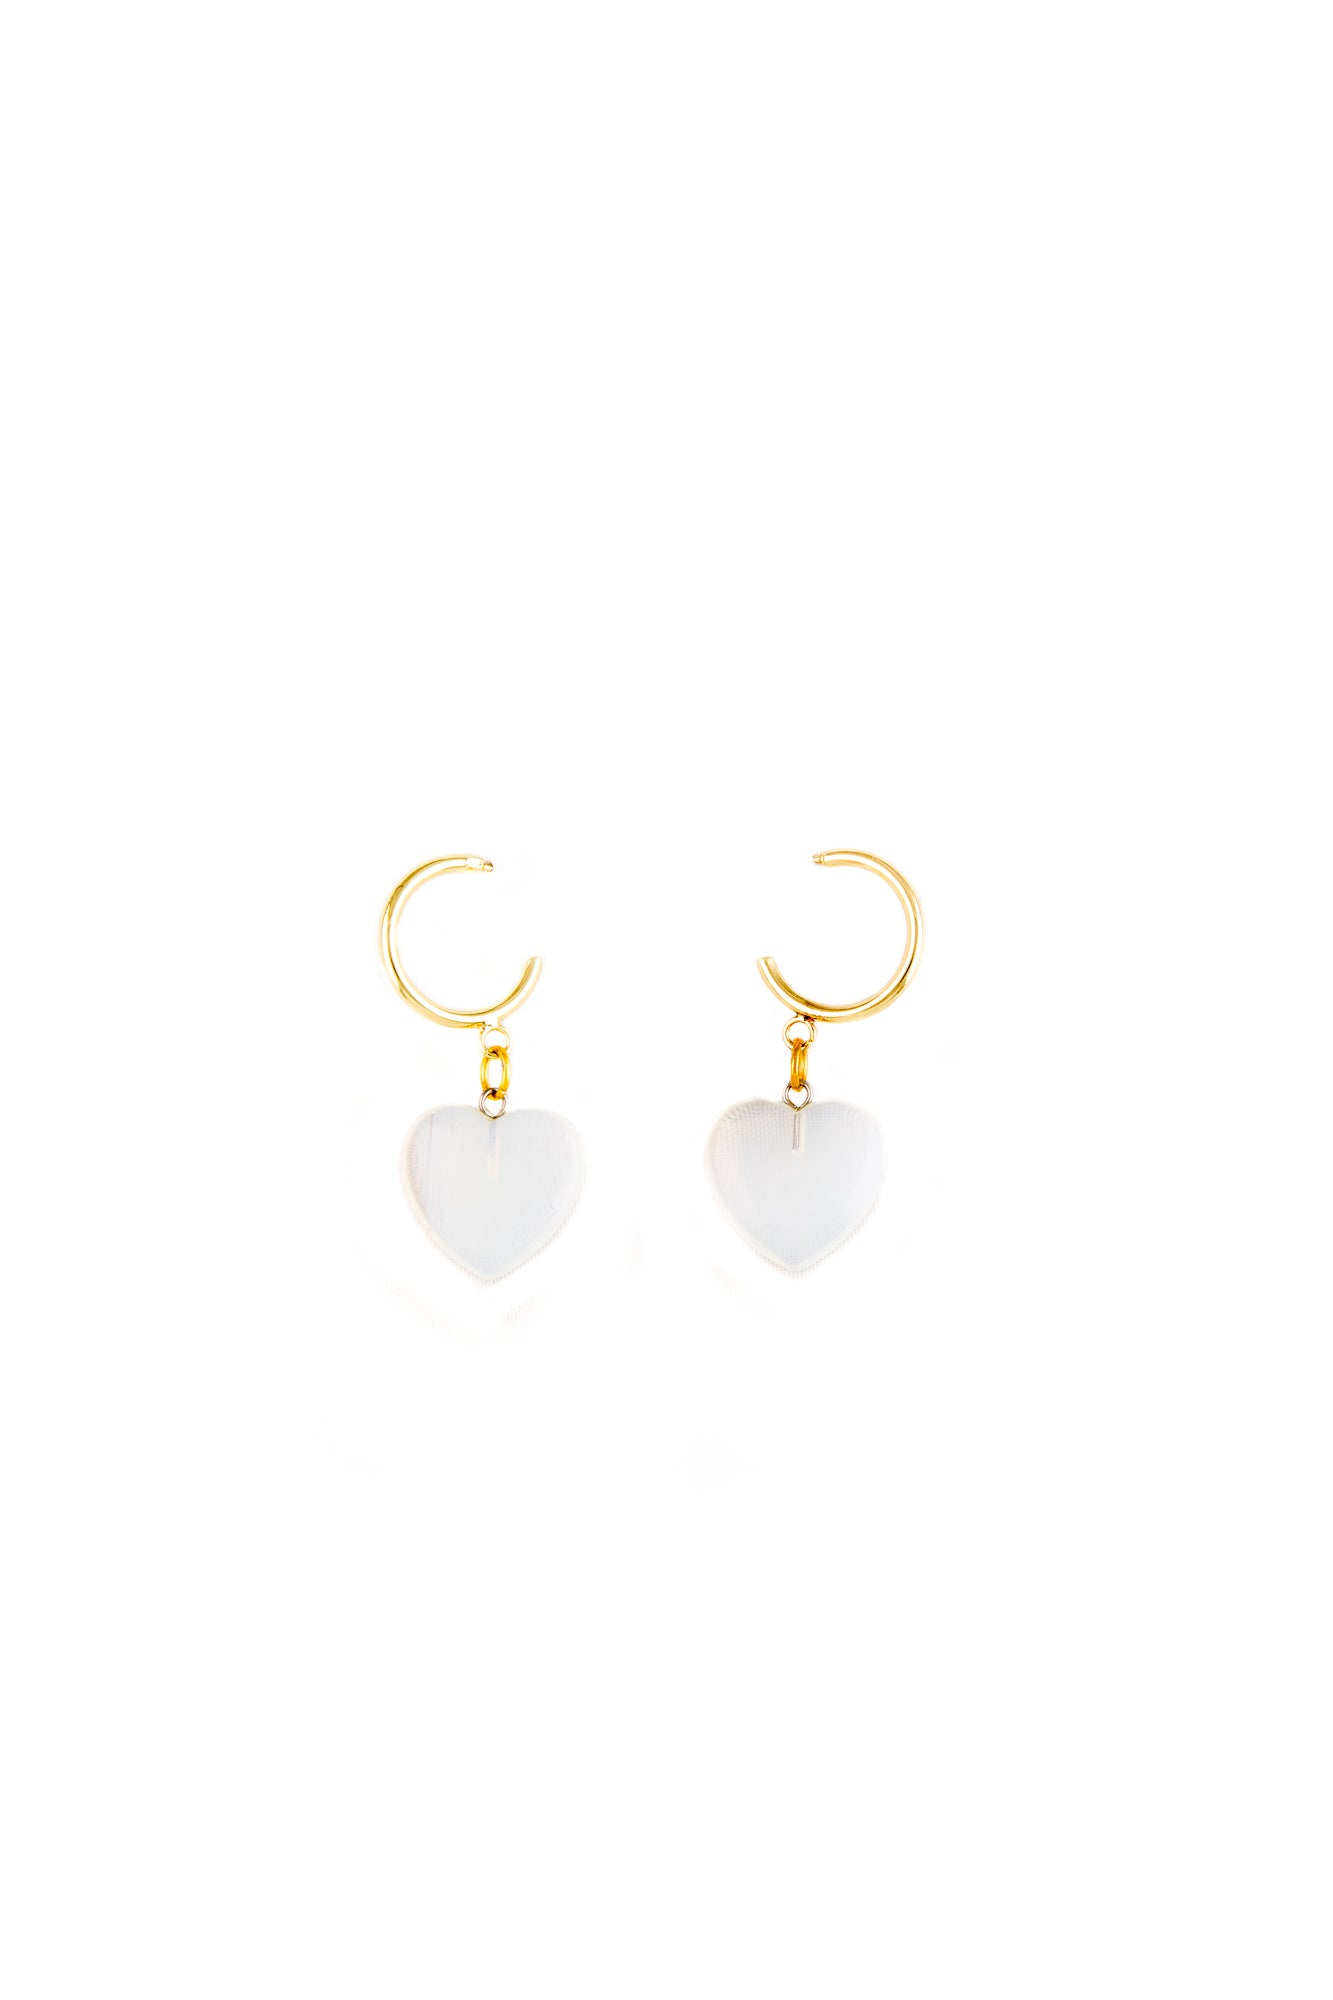 Moonstone Heart shaped earrings - Sofi Moukidou